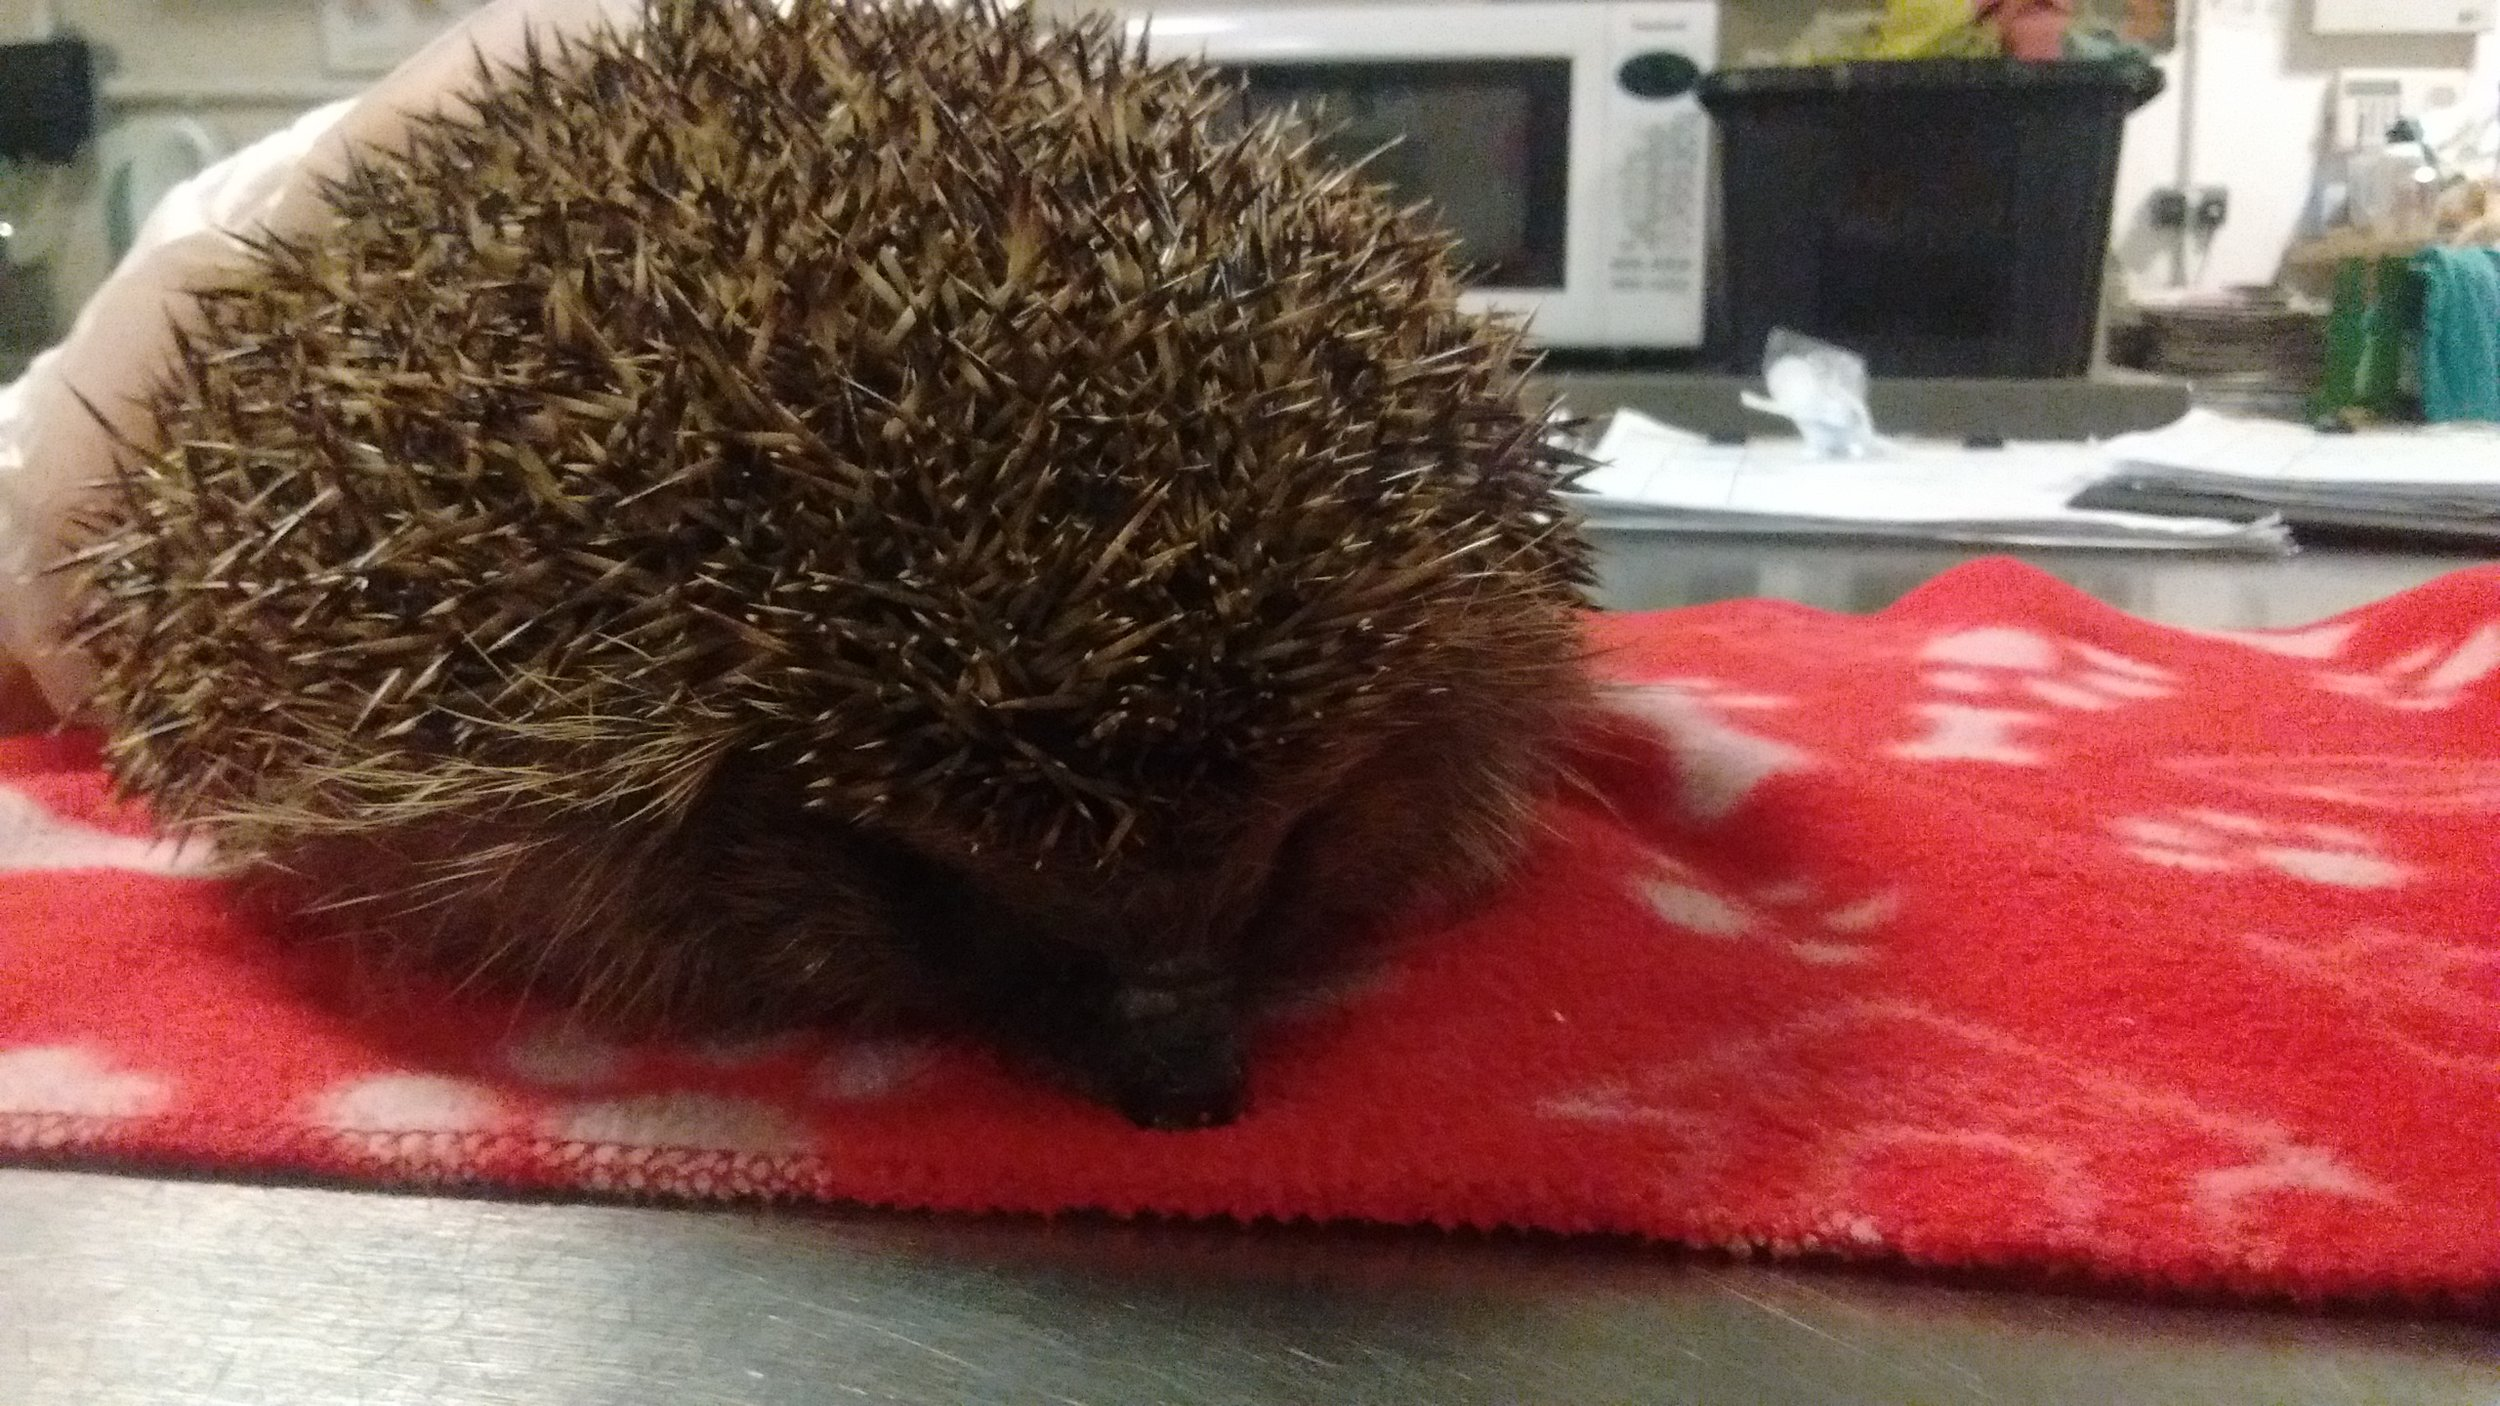 January 2018: Adele the Nightingale garden hedgehog, rescued in November 2017 (at 300g and full of parasites) and fattened up very successfully in the local hospital.